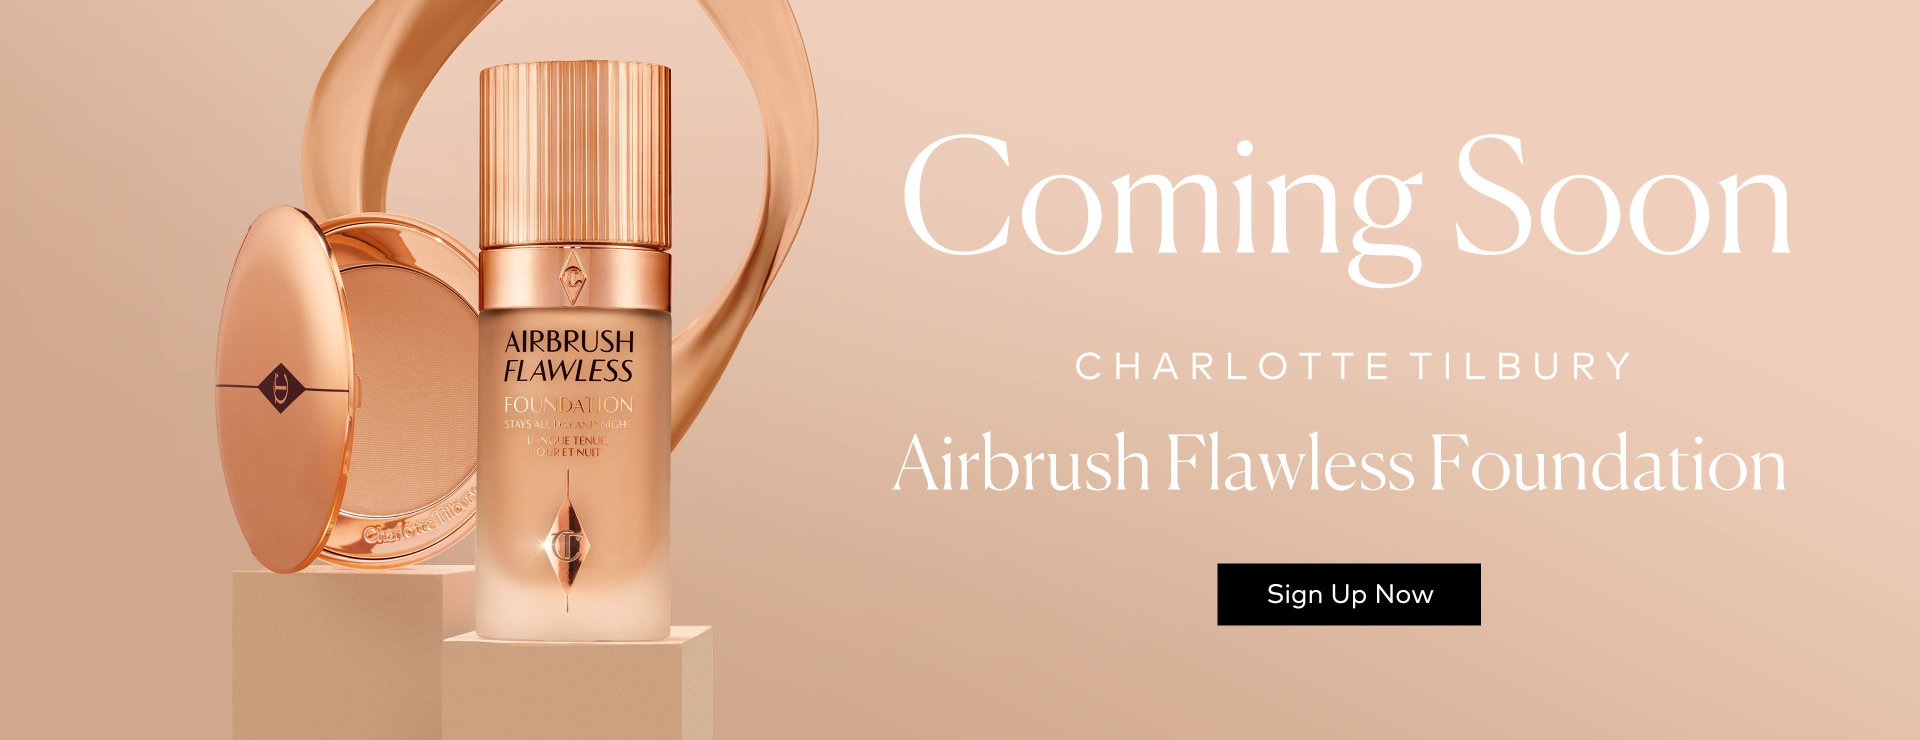 Charlotte Tilbury's Airbrush Flawless Foundation – Sign Up for Notifications